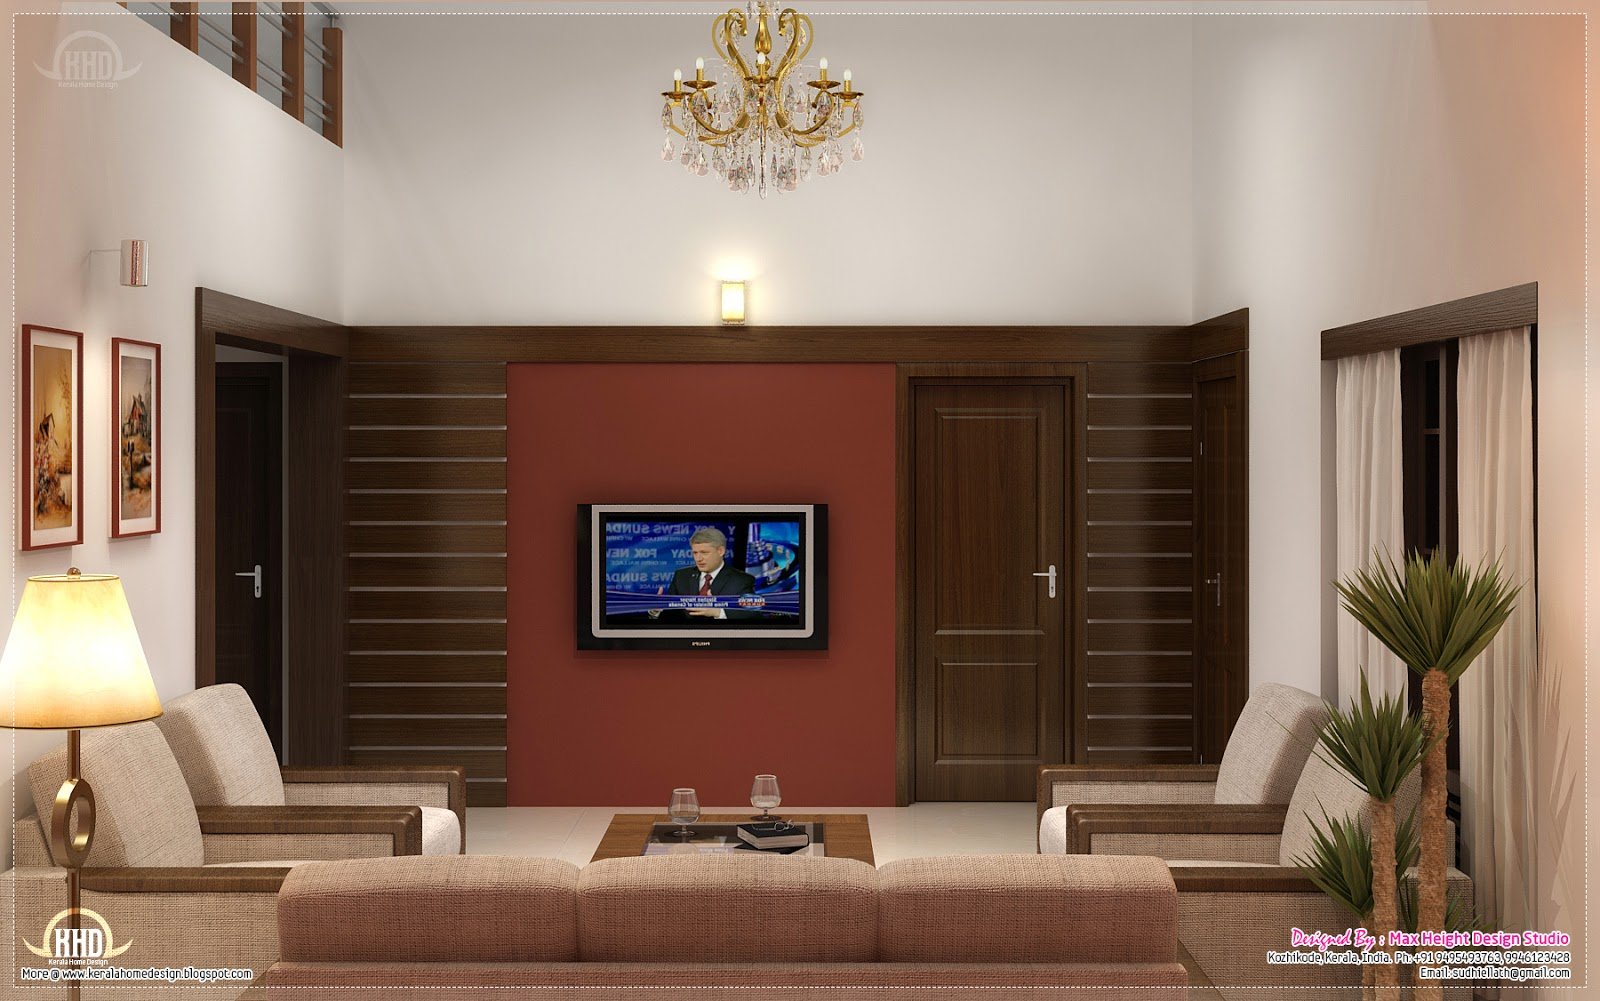 Home interior design ideas kerala home design and floor for Living room design ideas kerala